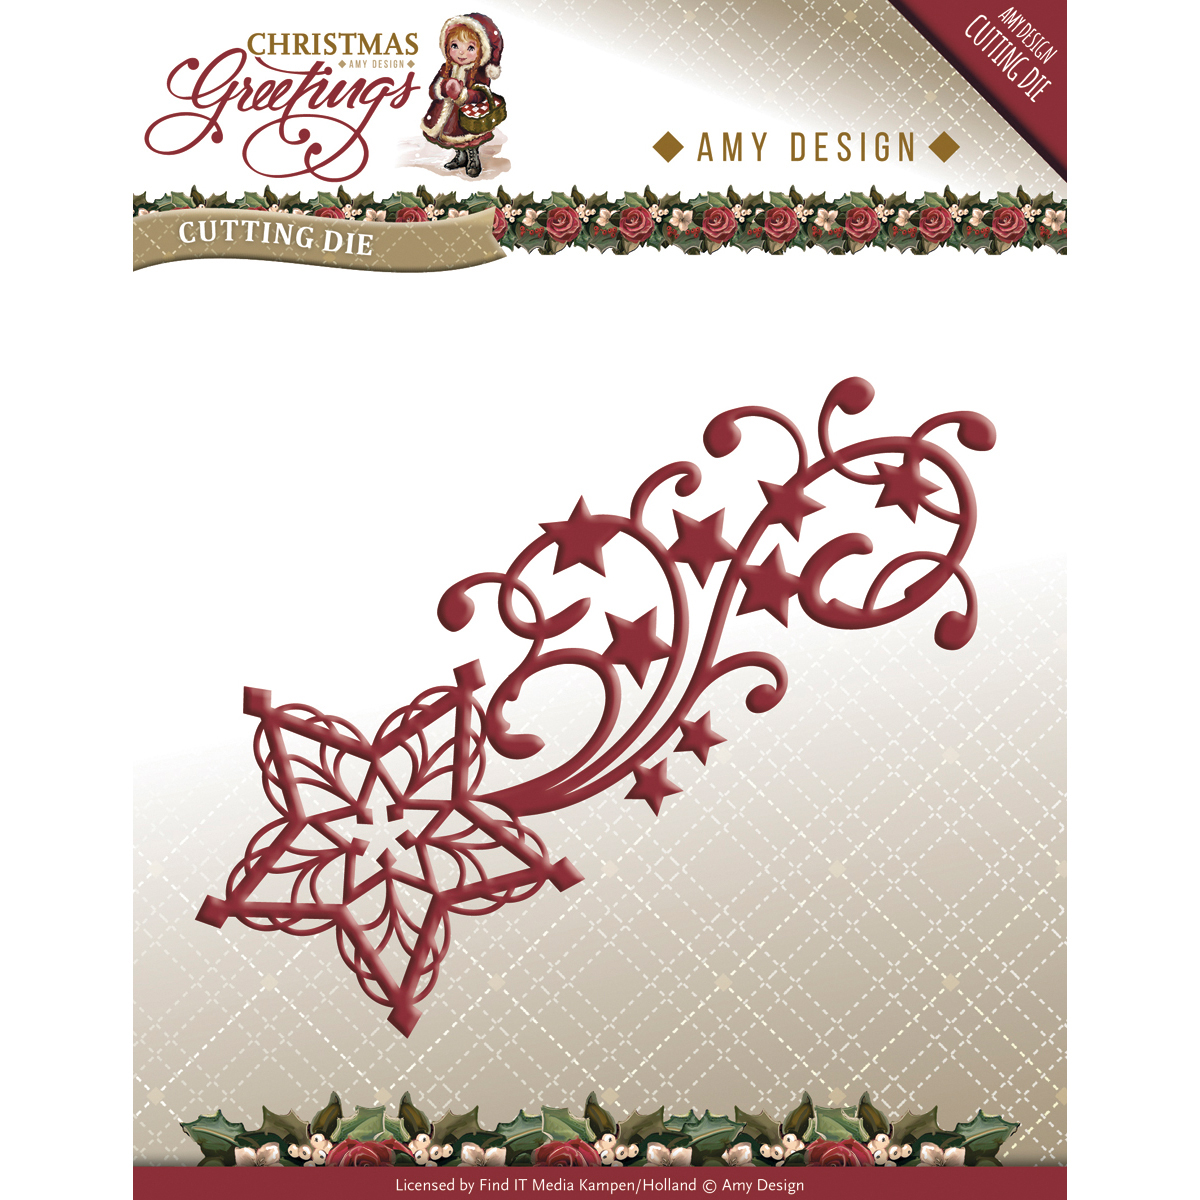 Shooting Star - Find It Trading Amy Design Christmas Greetings Die